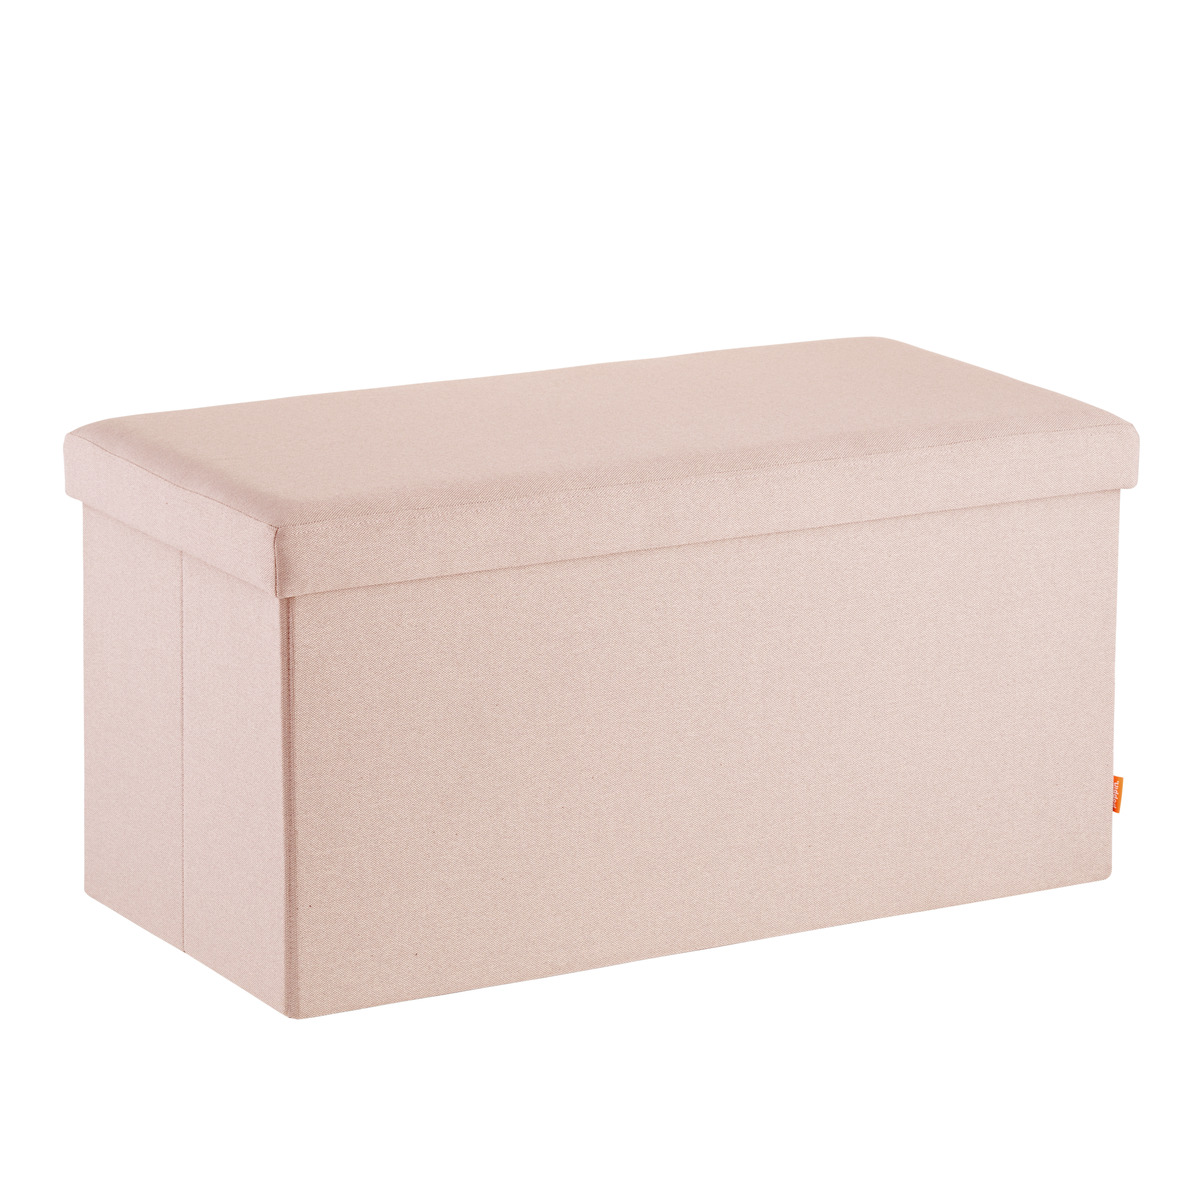 Poppin Blush Box Bench